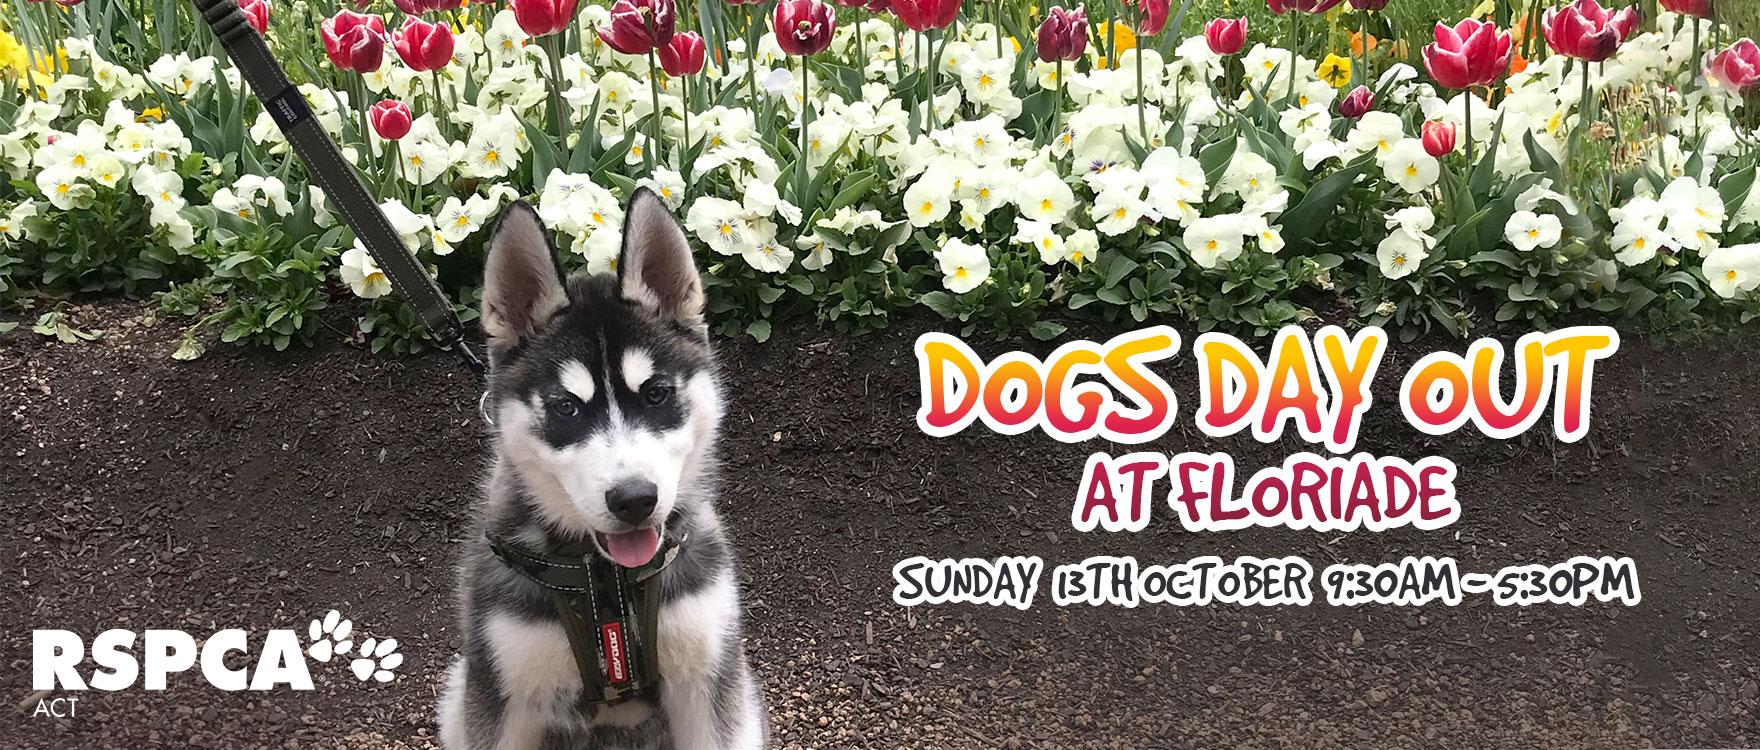 Dogs Day Out at Floriade